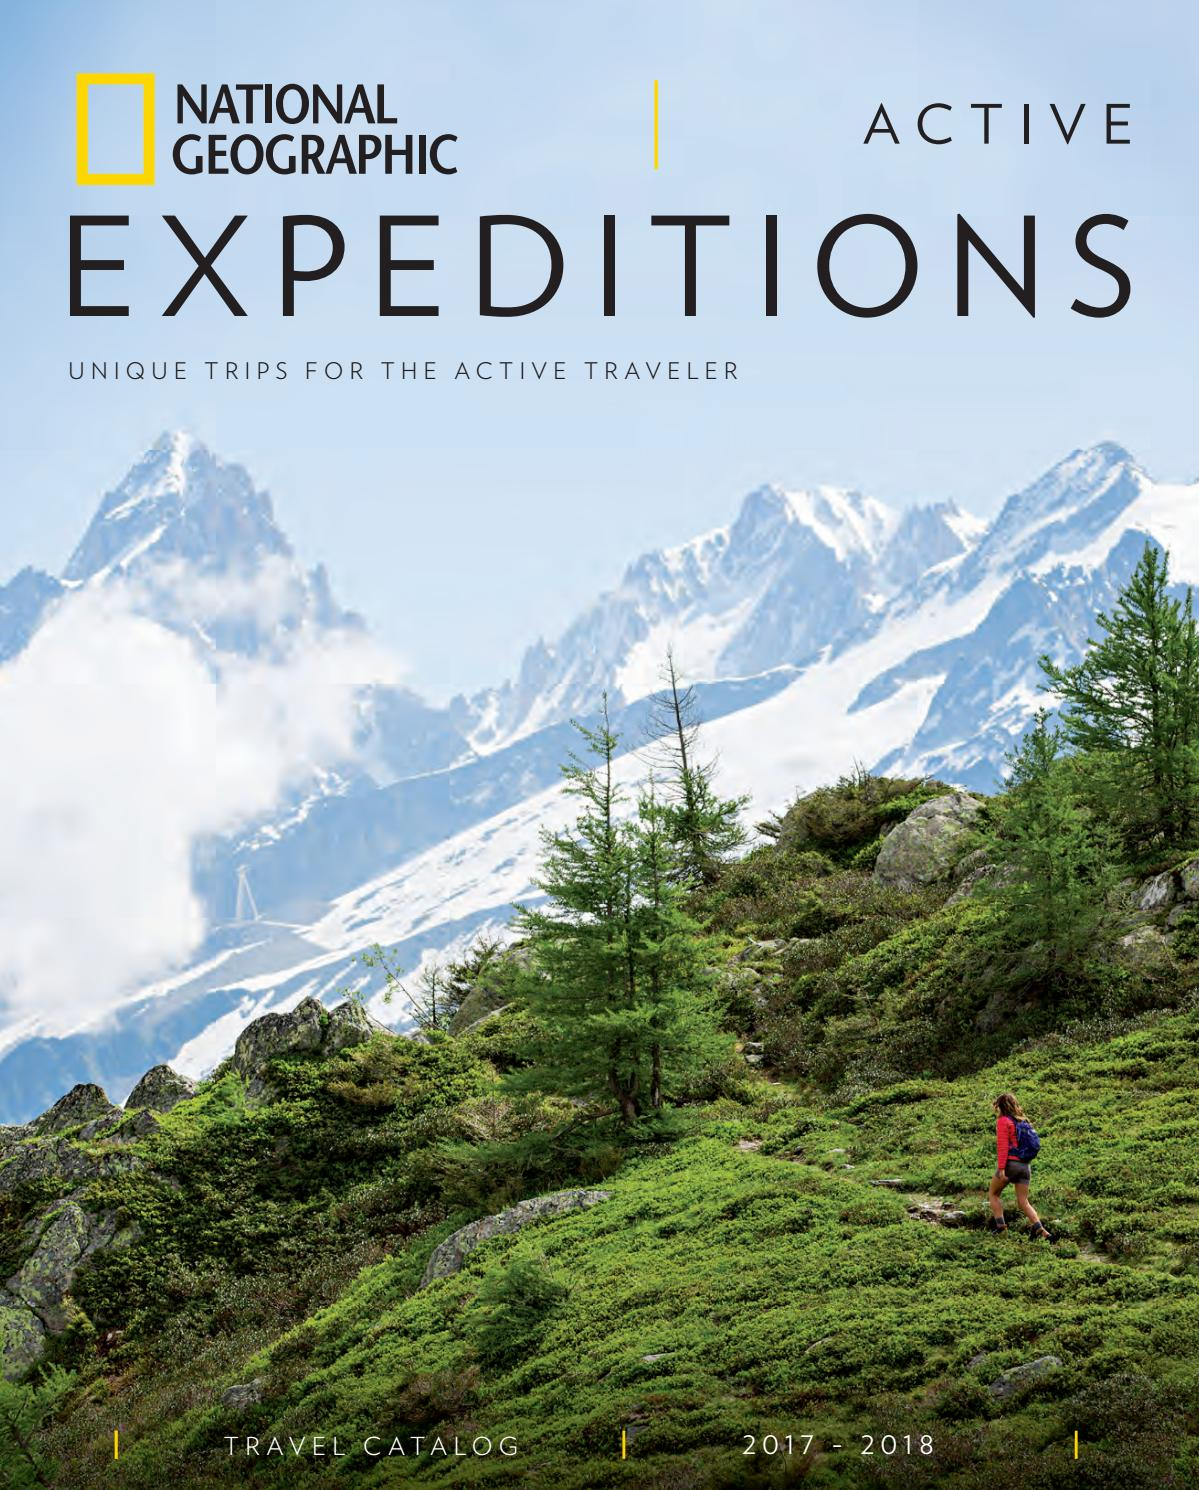 National Geographic Traveler Logo >> 2017-2018 National Geographic Active Expeditions Catalog by National Geographic Expeditions - Issuu